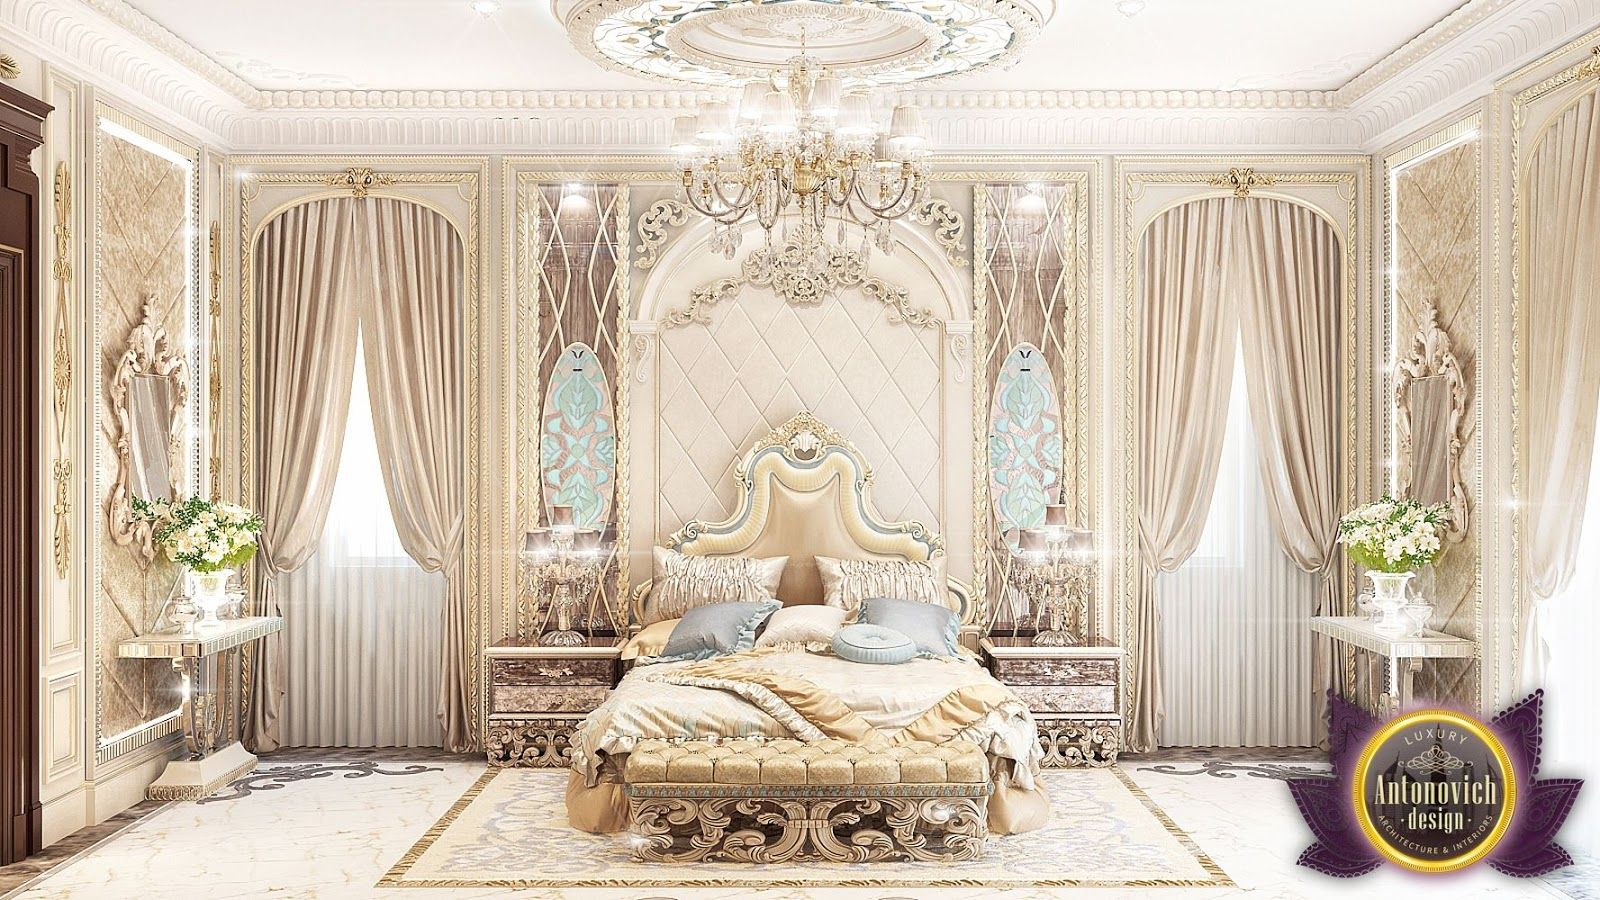 Beautiful dressing room design in dubai by luxury antonovich design - Find This Pin And More On Bedroom By Elbentalpurtoka